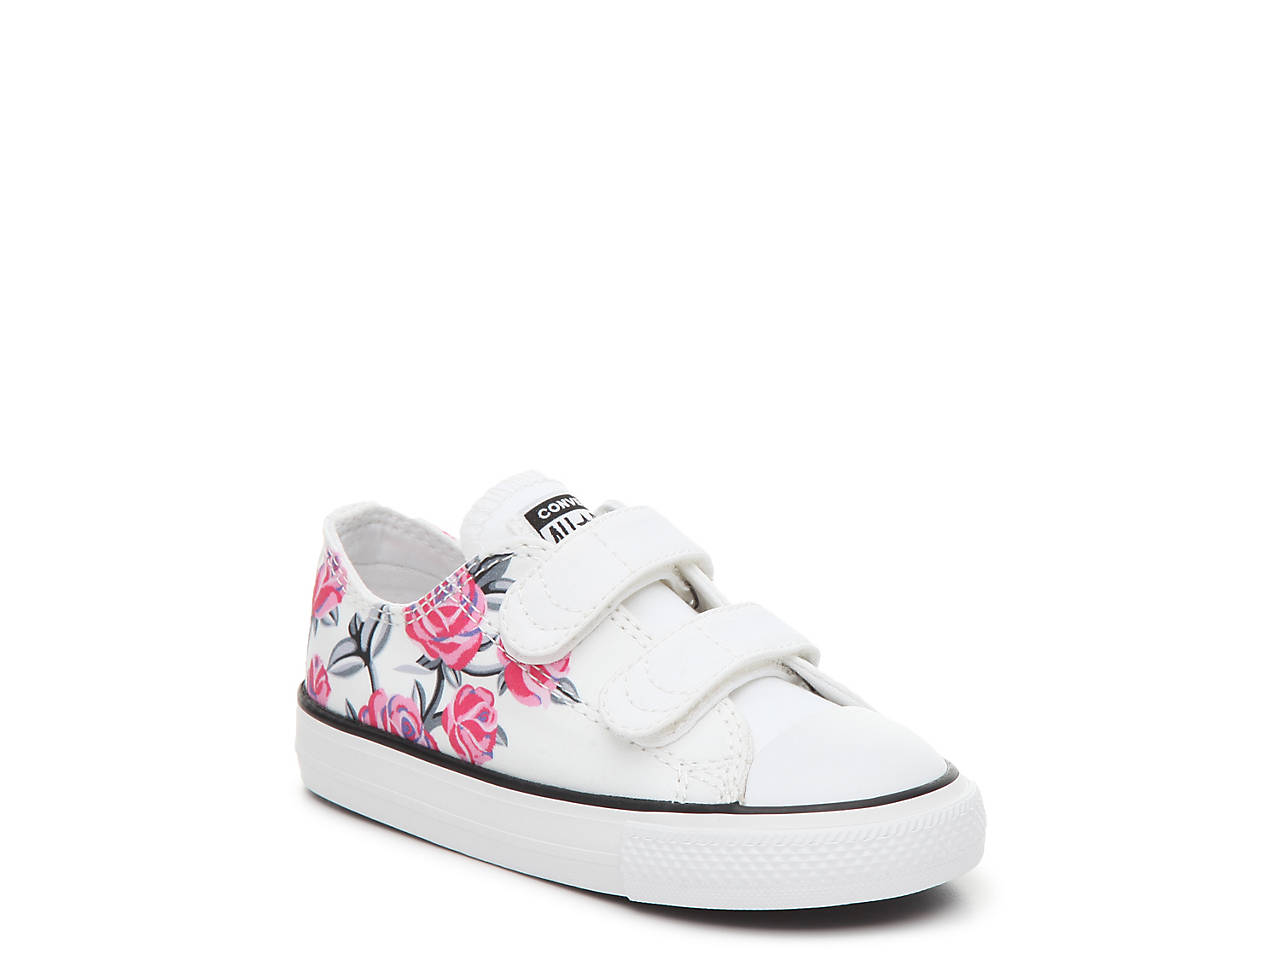 444df5ca8629 Converse Chuck Taylor All Star Pretty Strong Infant   Toddler ...